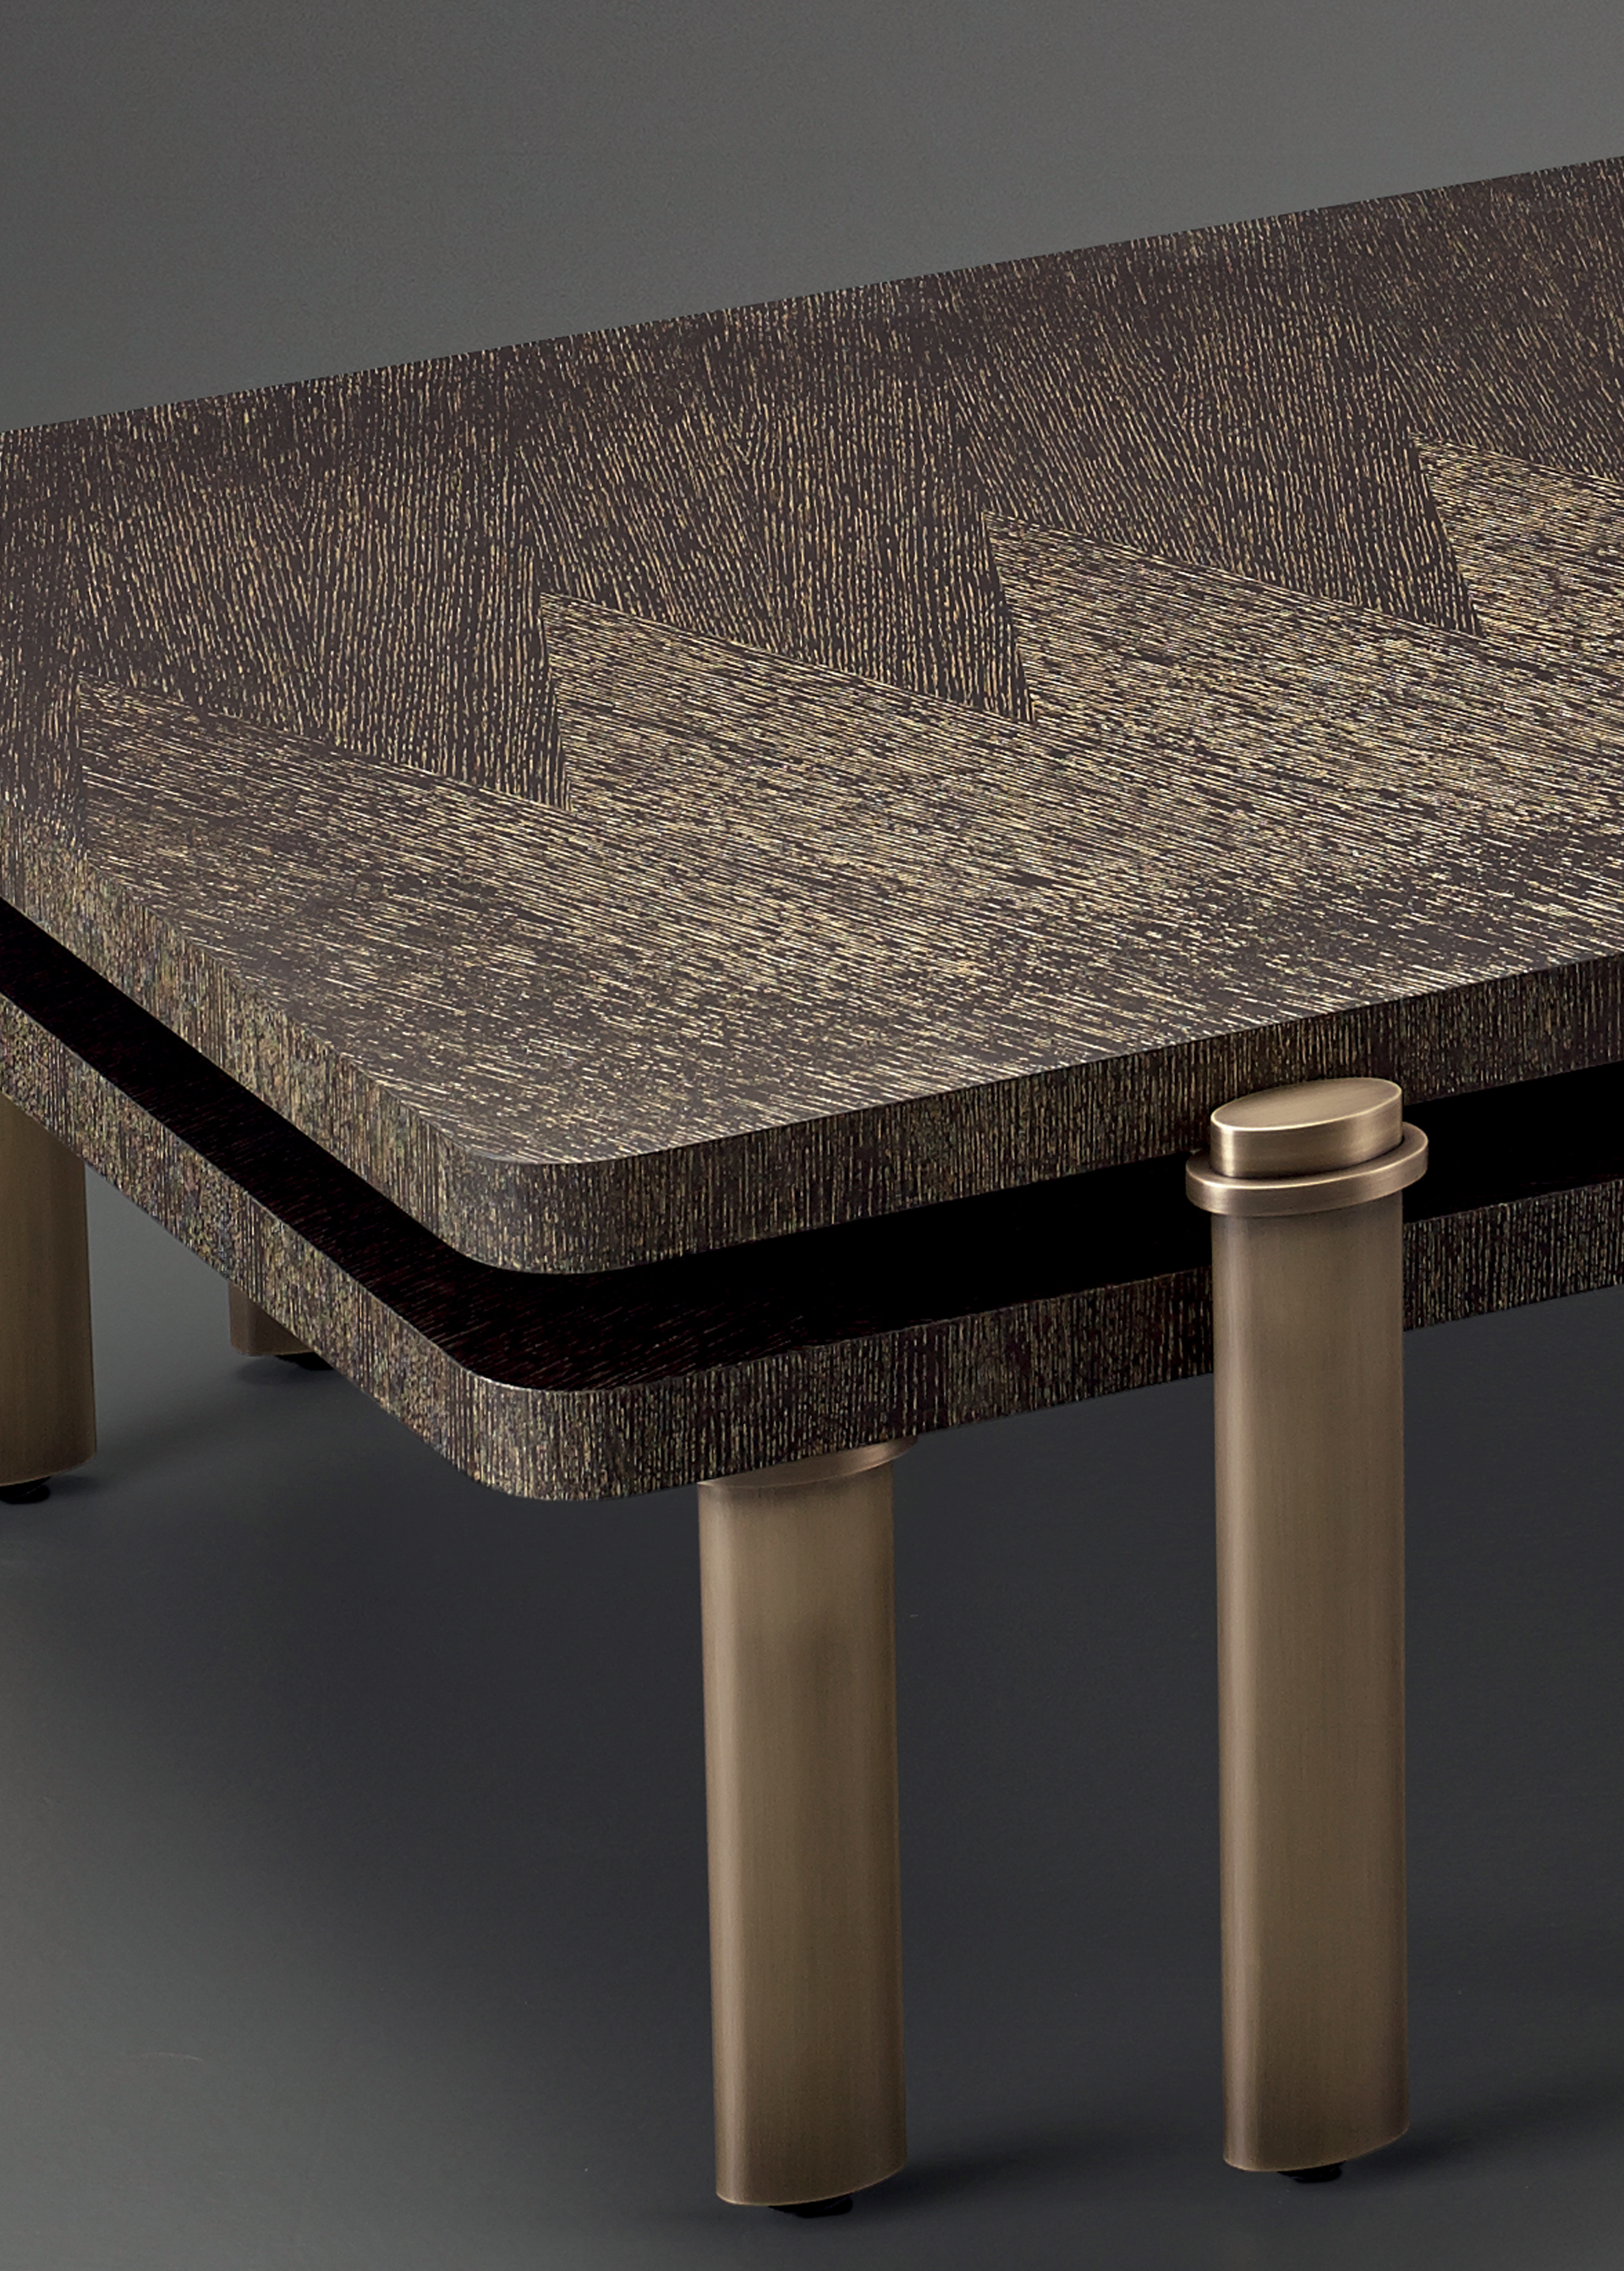 Bronze detail of Passepartout, two wooden coffee tables with wheels and bronze decoration, from Promemoria's catalogue | Promemoria